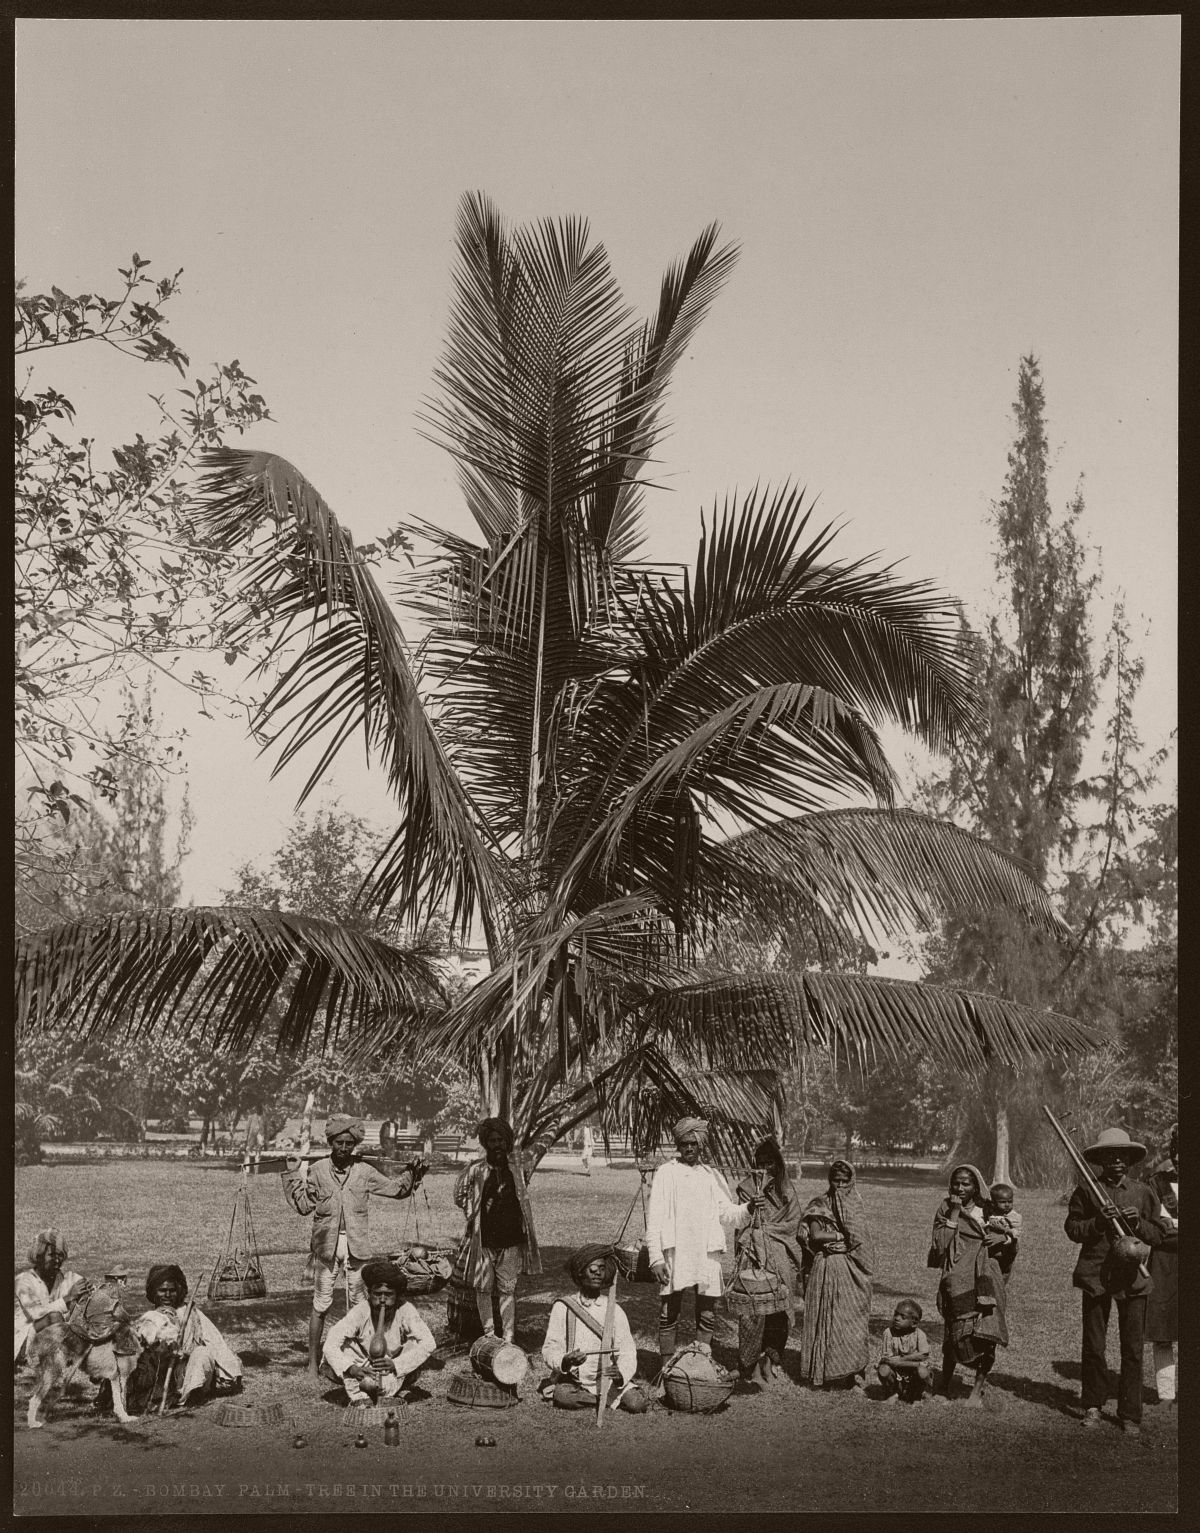 Bombay. Palm-tree in the university garden